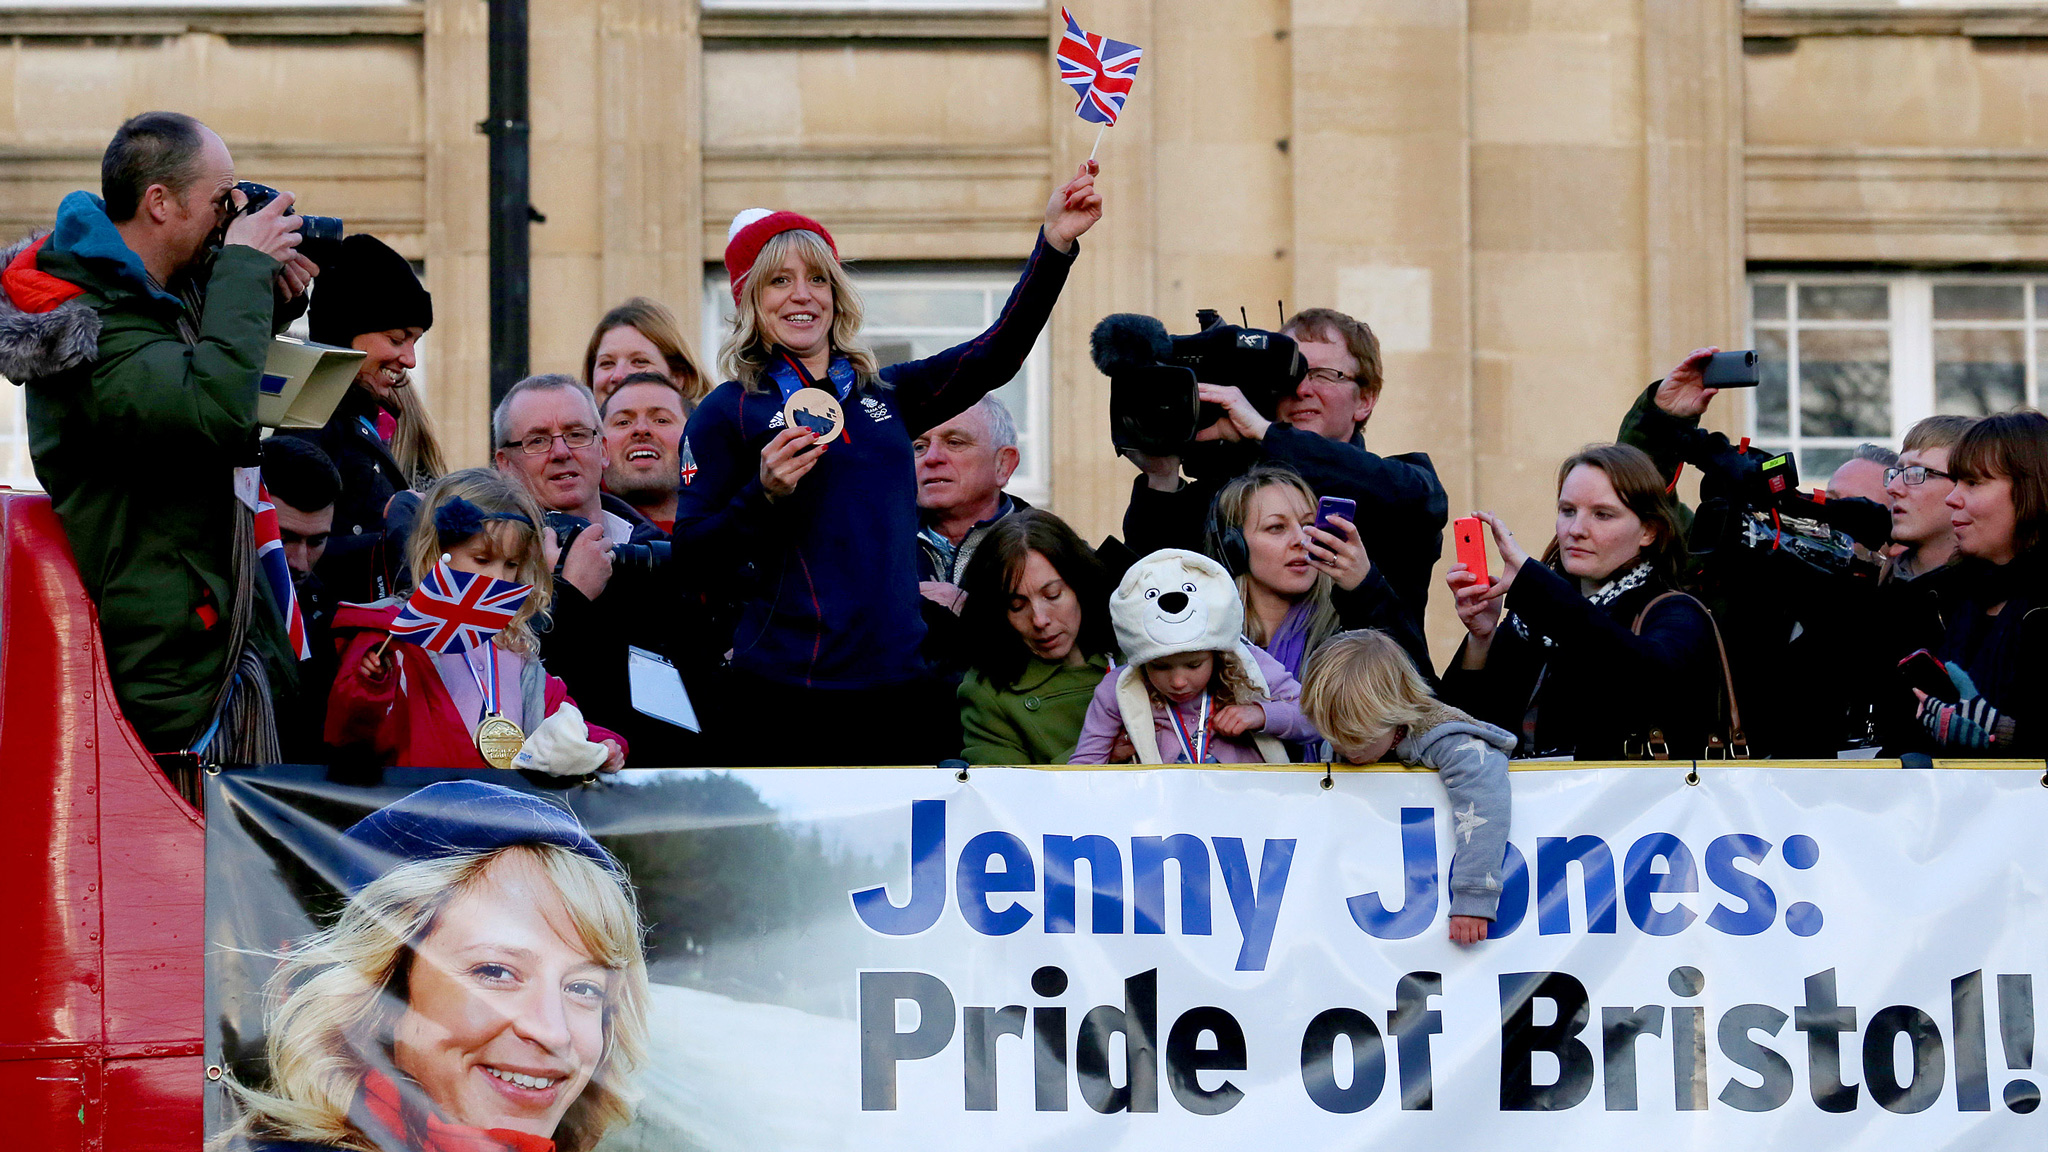 Jenny Jones waves to a crowd of fans from a bus during her post-Sochi hero's-welcome homecoming tour.